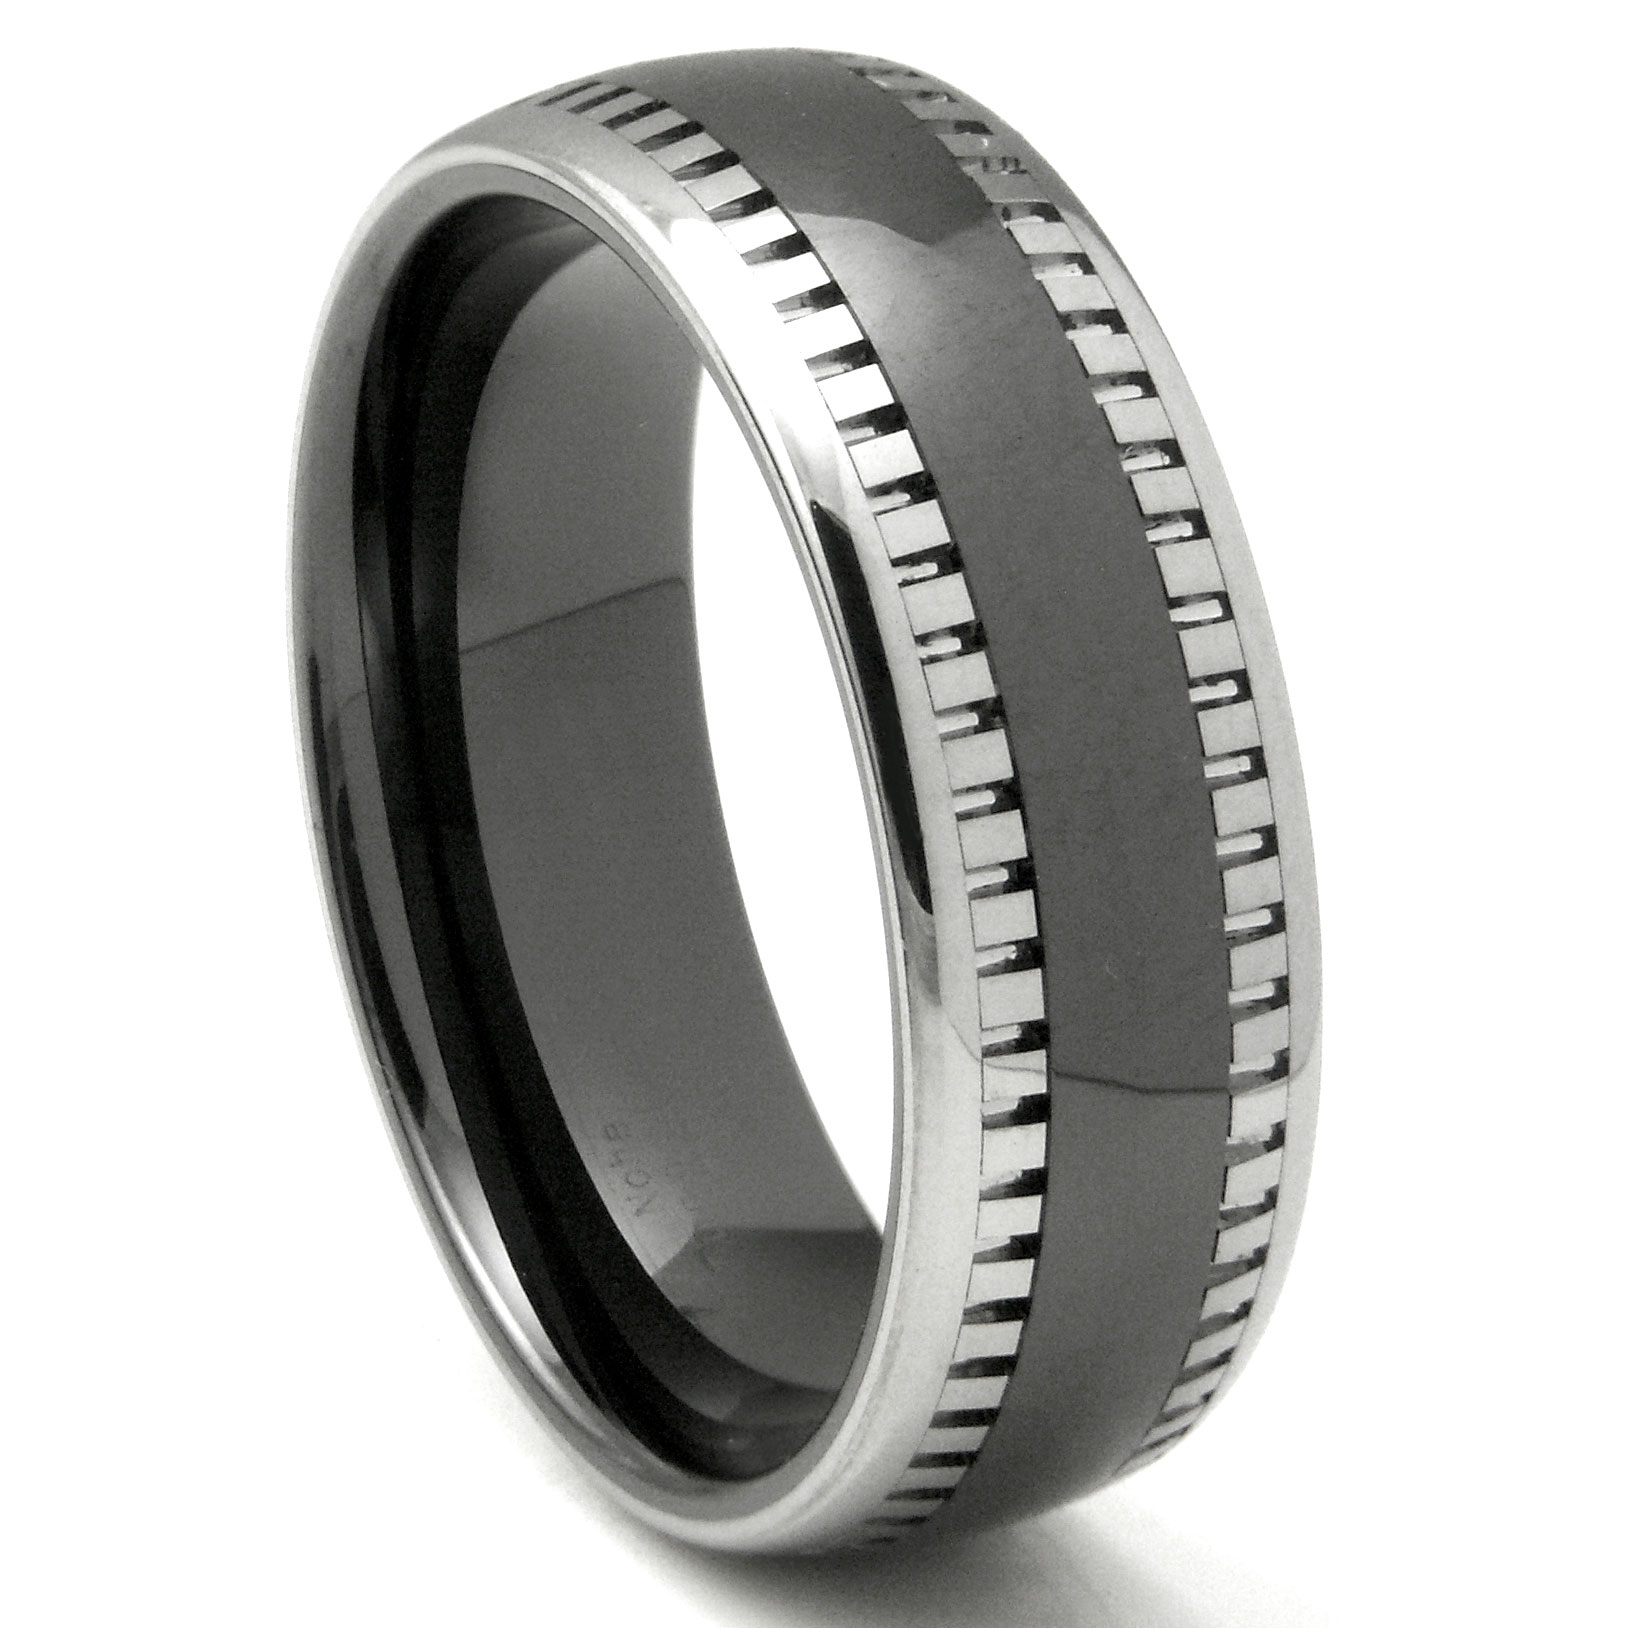 Mens Tungsten Carbide Rings 1 tungsten hammered wedding band 2nd Generation Tungsten Carbide Two Tone Milgrain Dome Wedding Band Ring